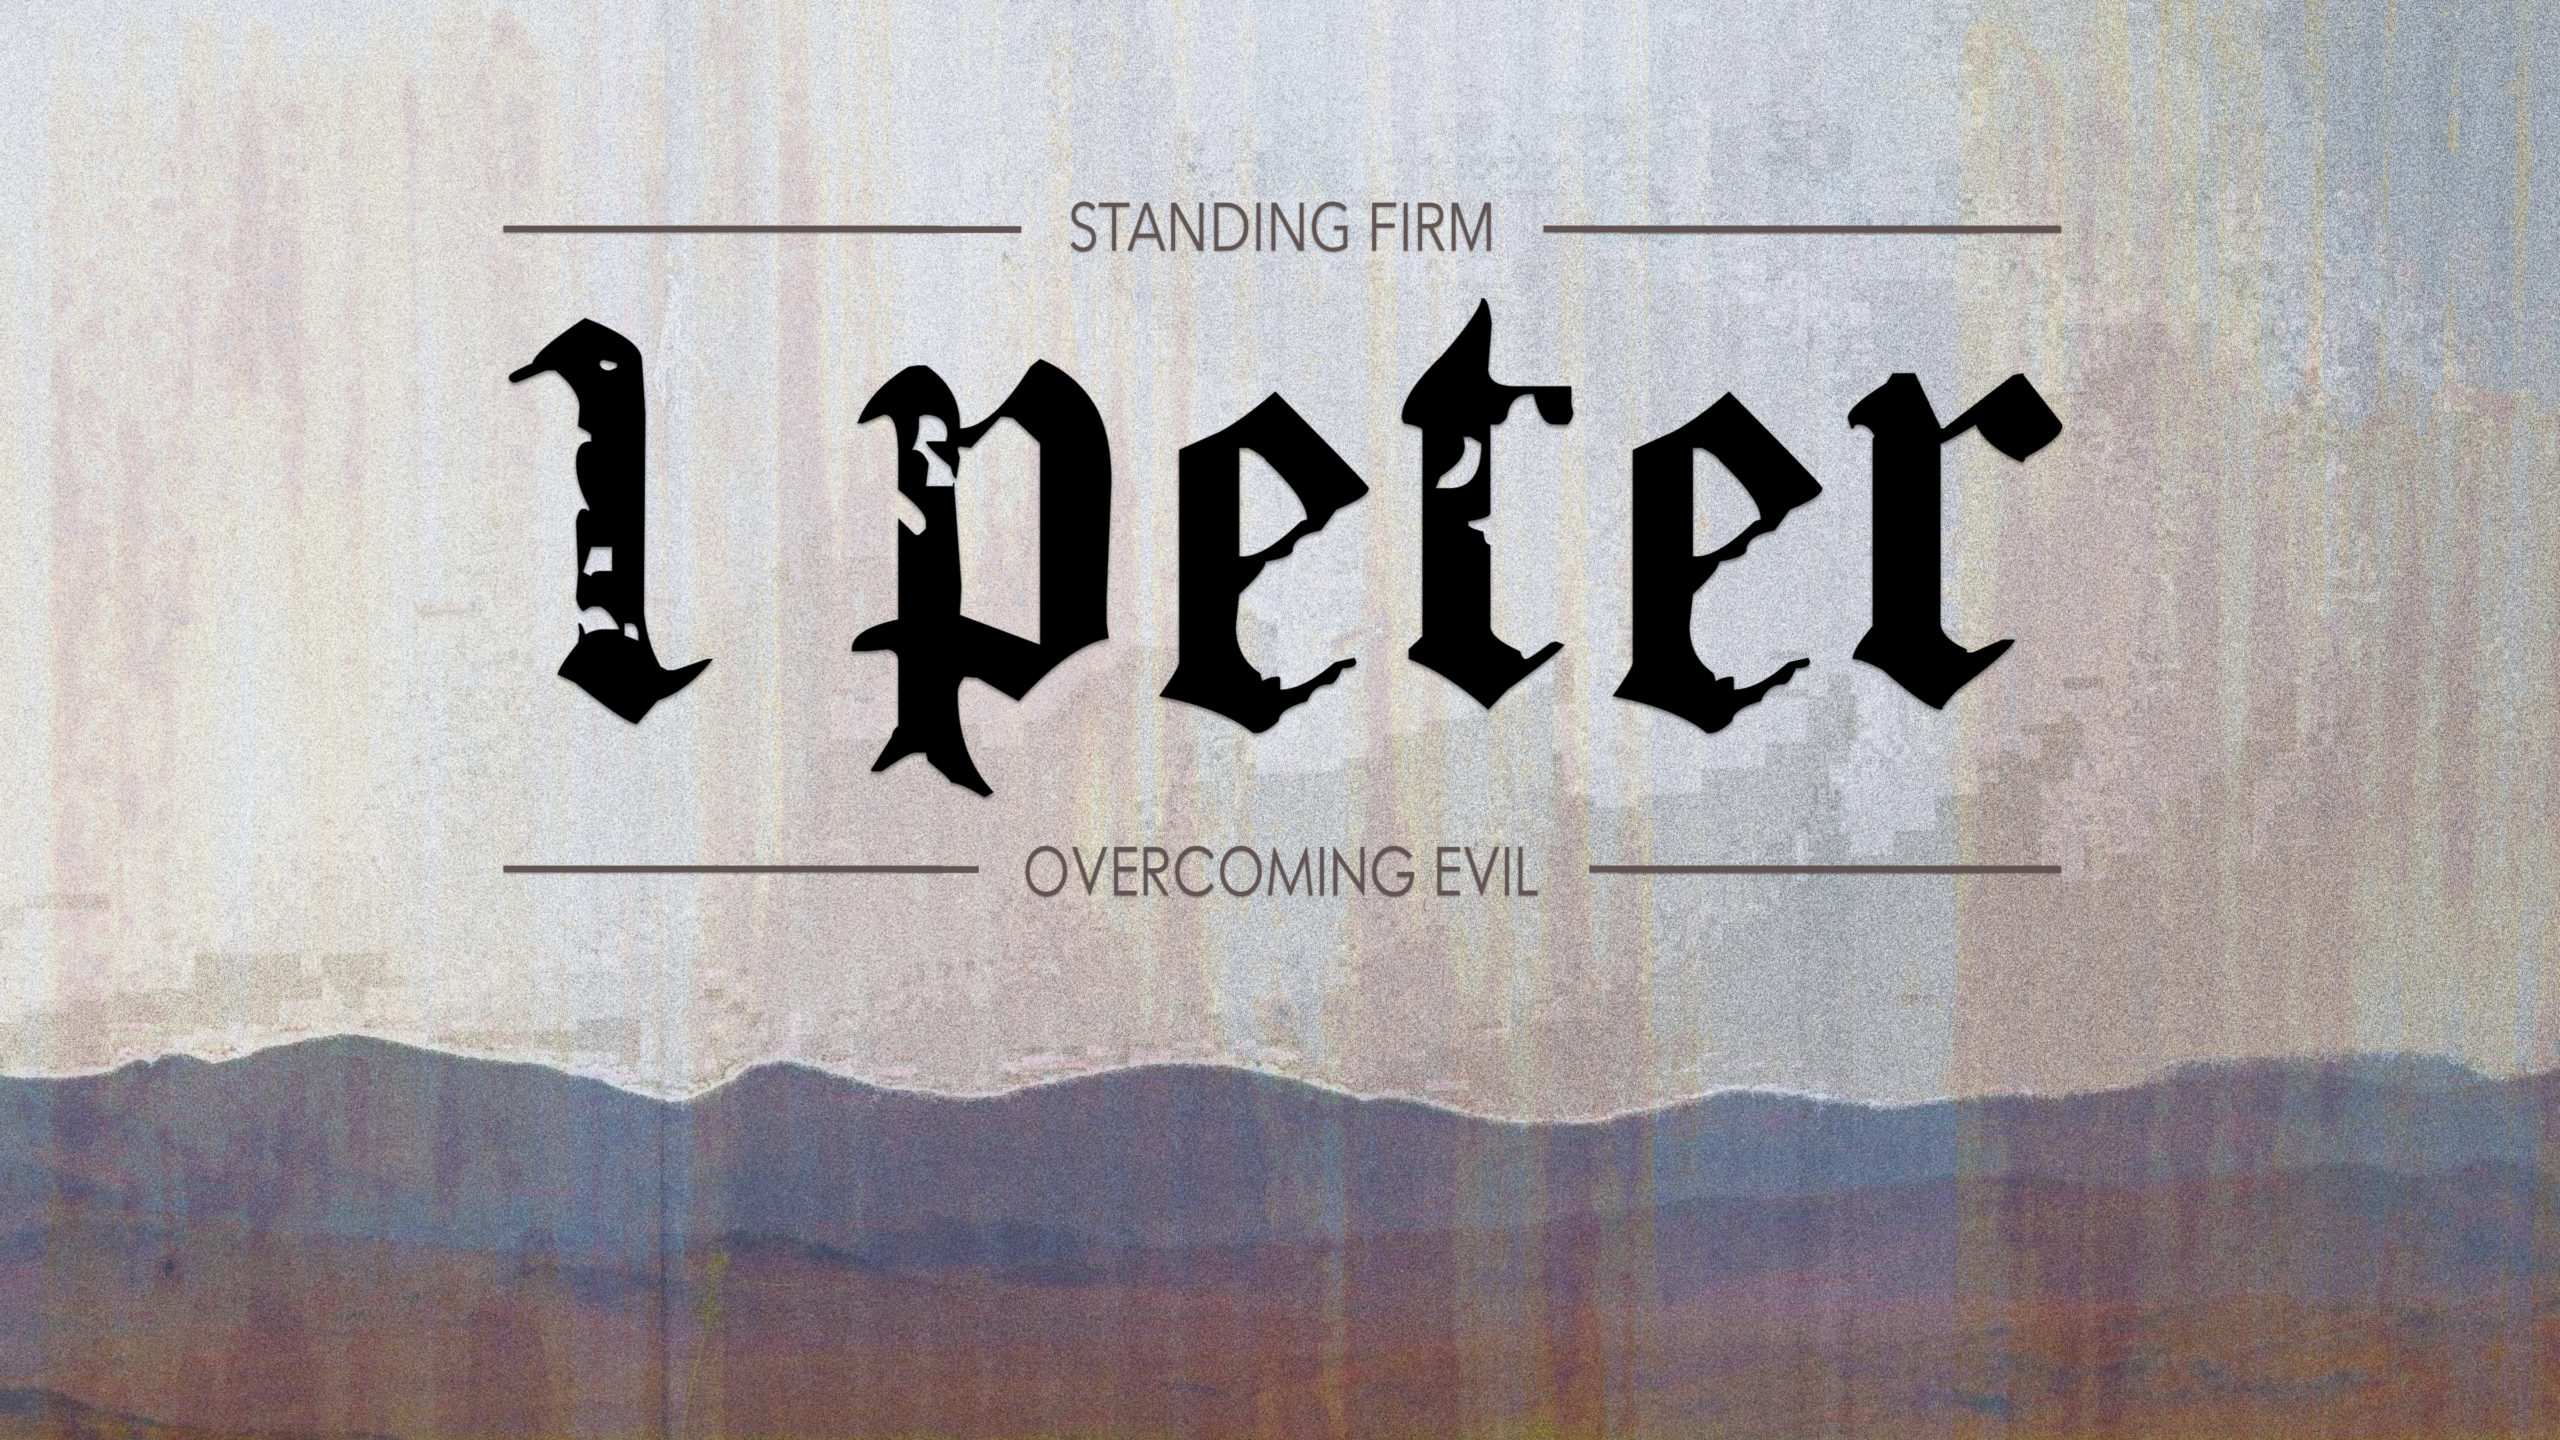 I Peter - Standing Firm - Overcoming Evil